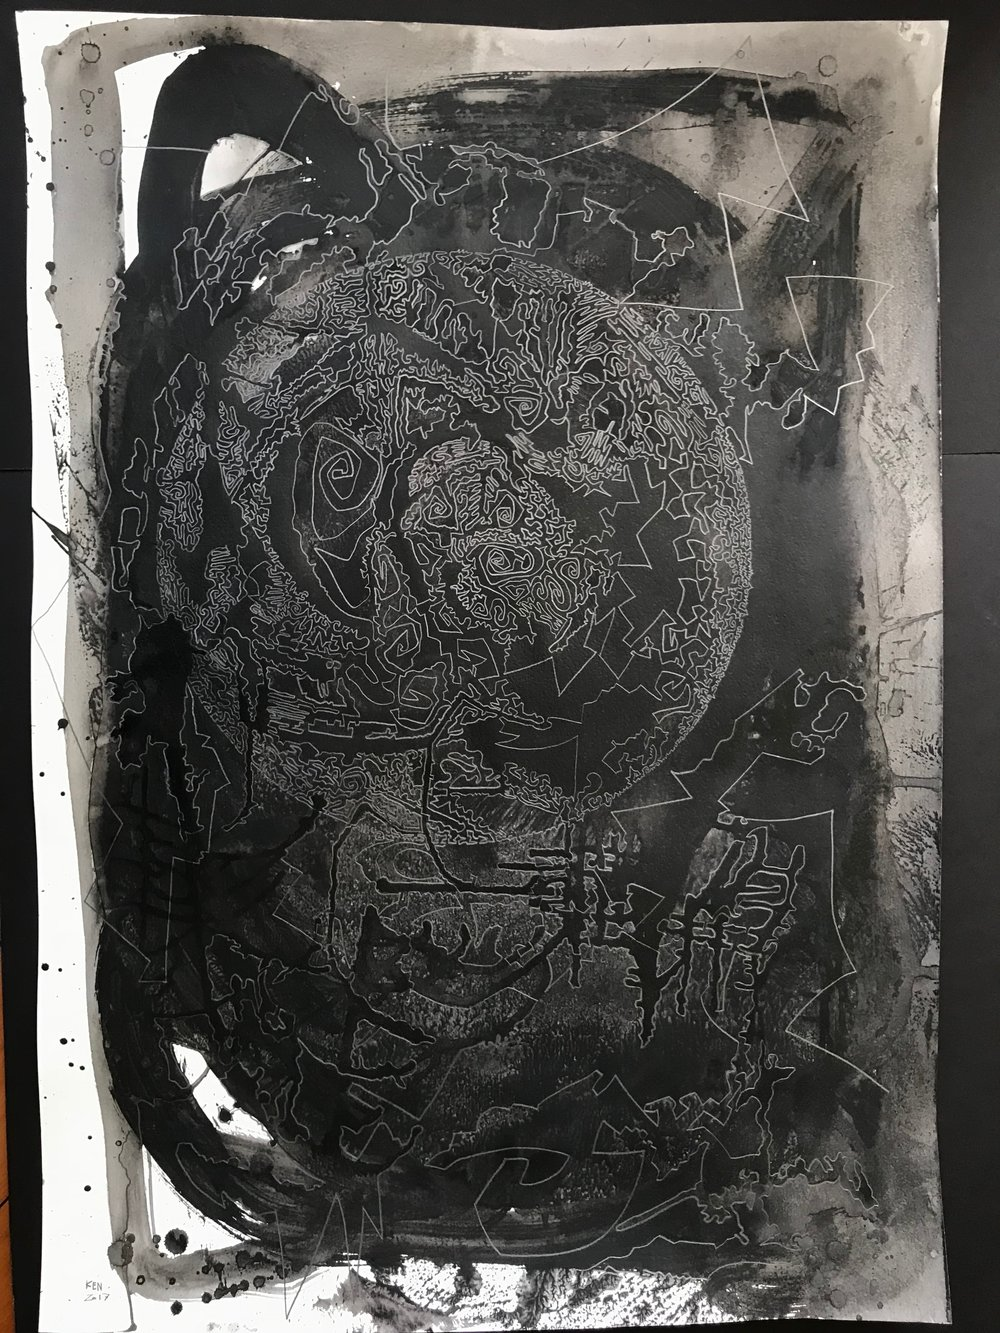 KEN HIRATSUKA  Dreaming Energy , 2017  Latex and graphite on paper. Signed and dated lower left  39.5 x 27.5 in.